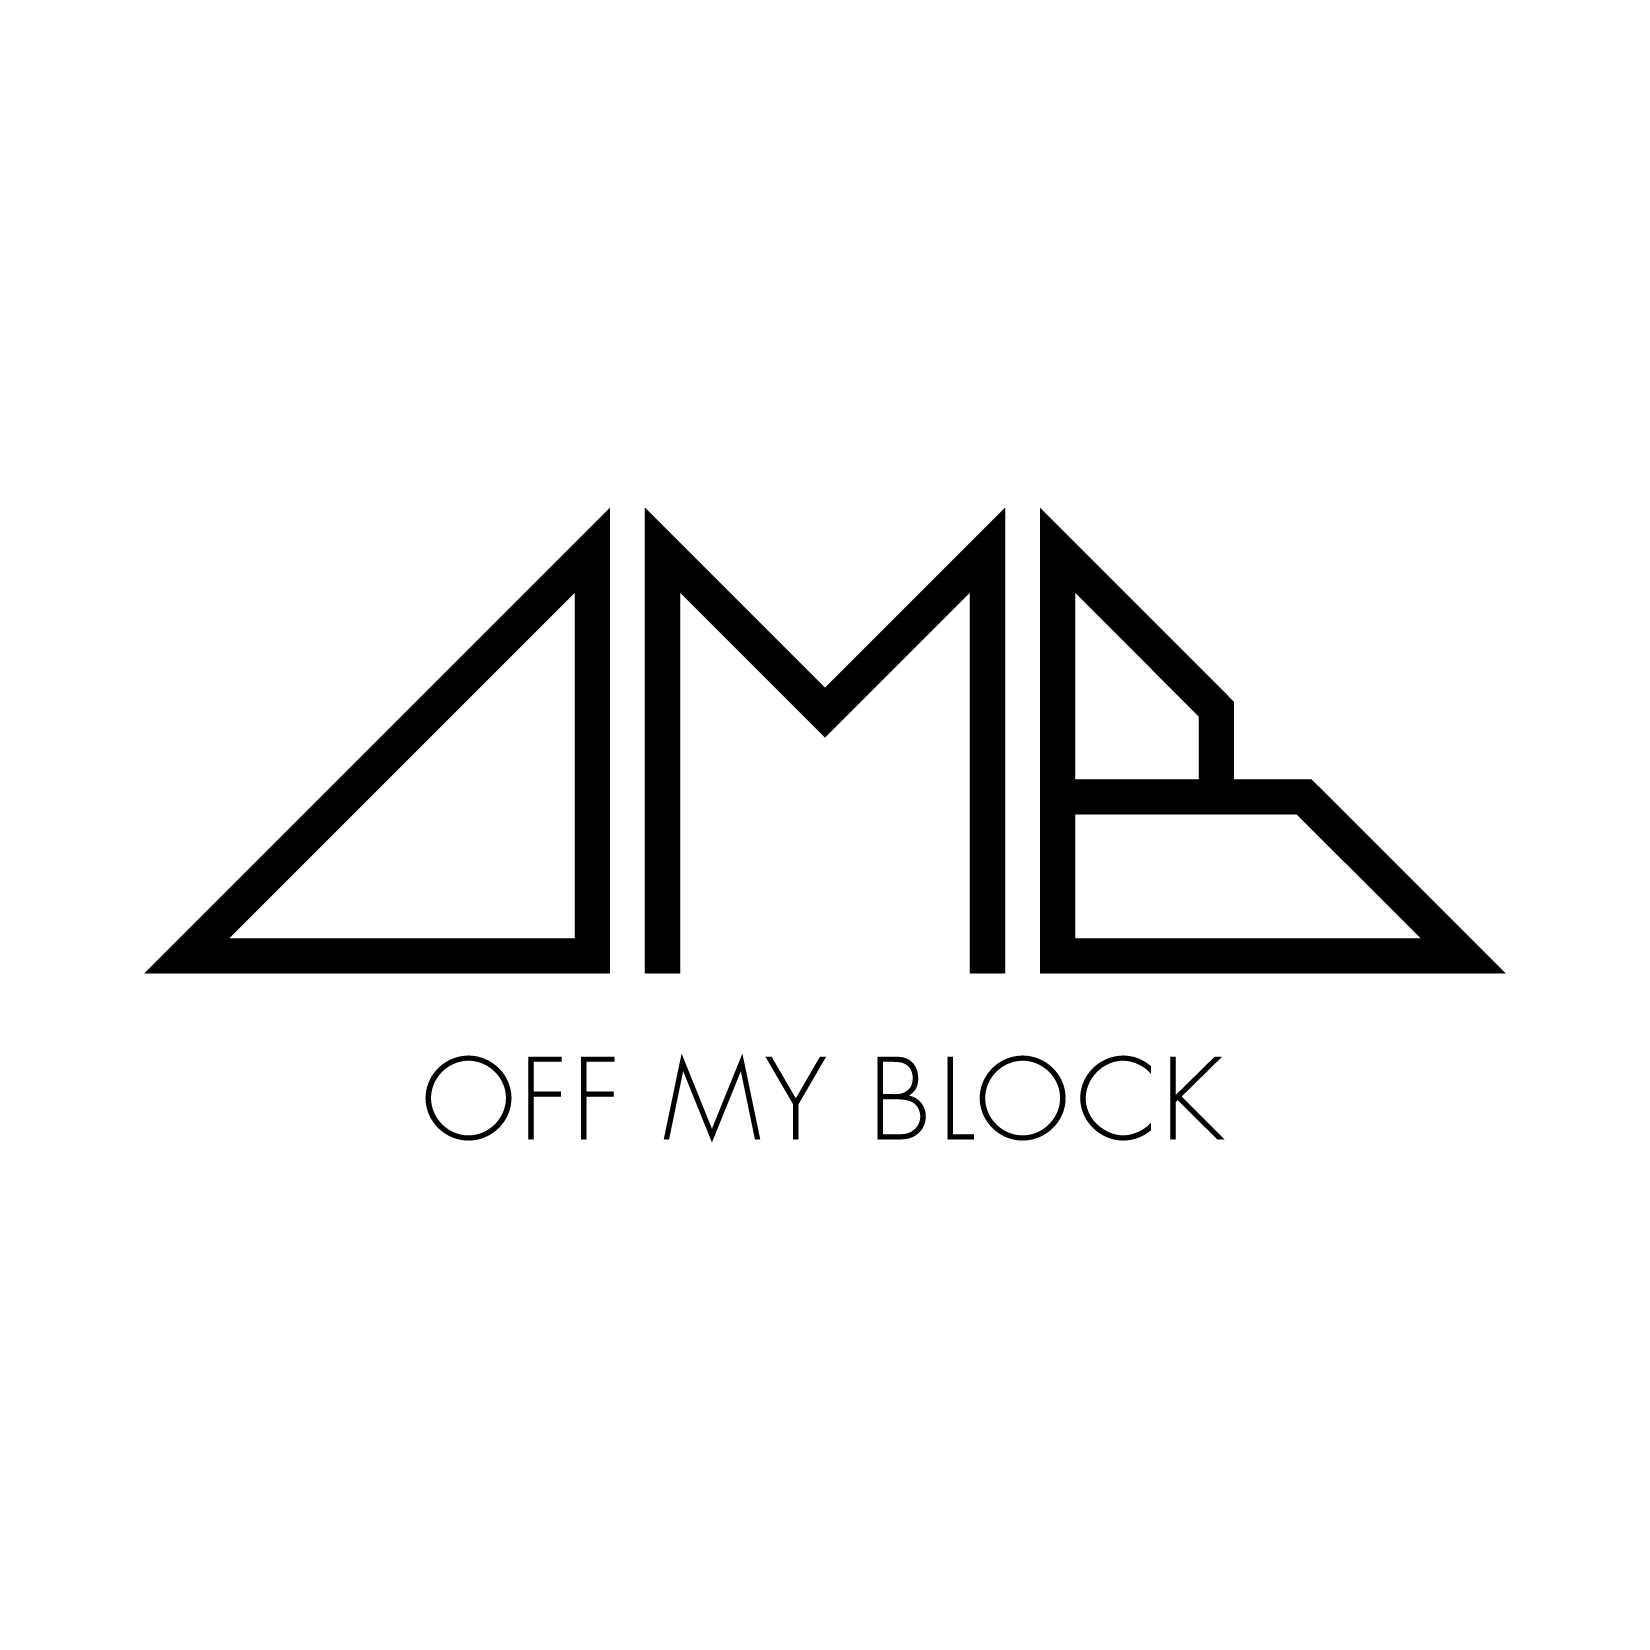 OMB_logo-01 (1).png